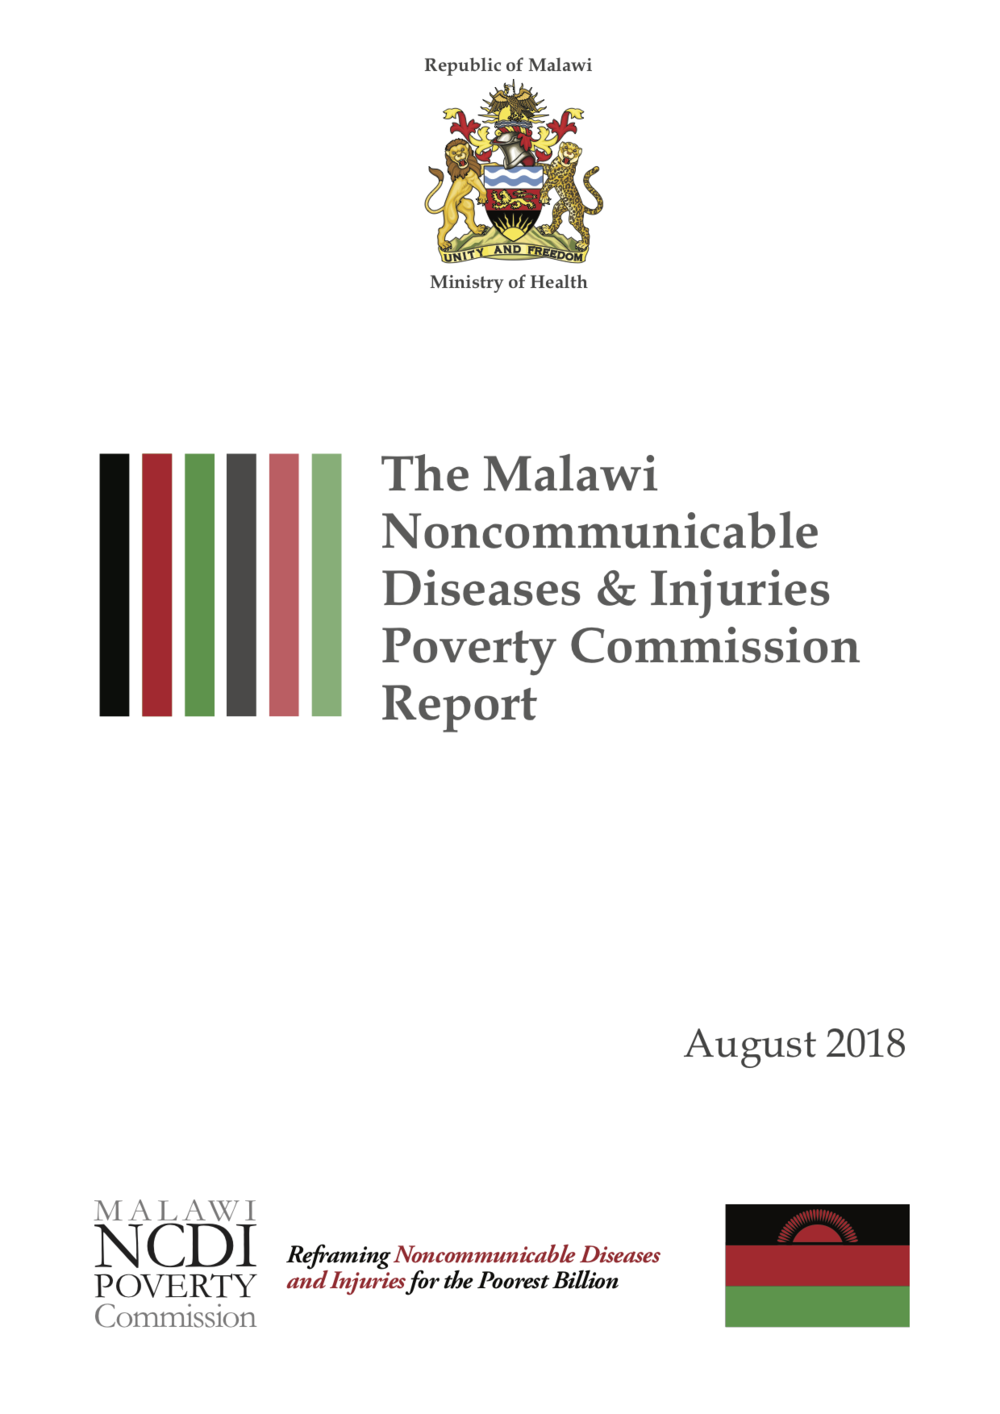 Malawi NCDI Poverty Commission Report